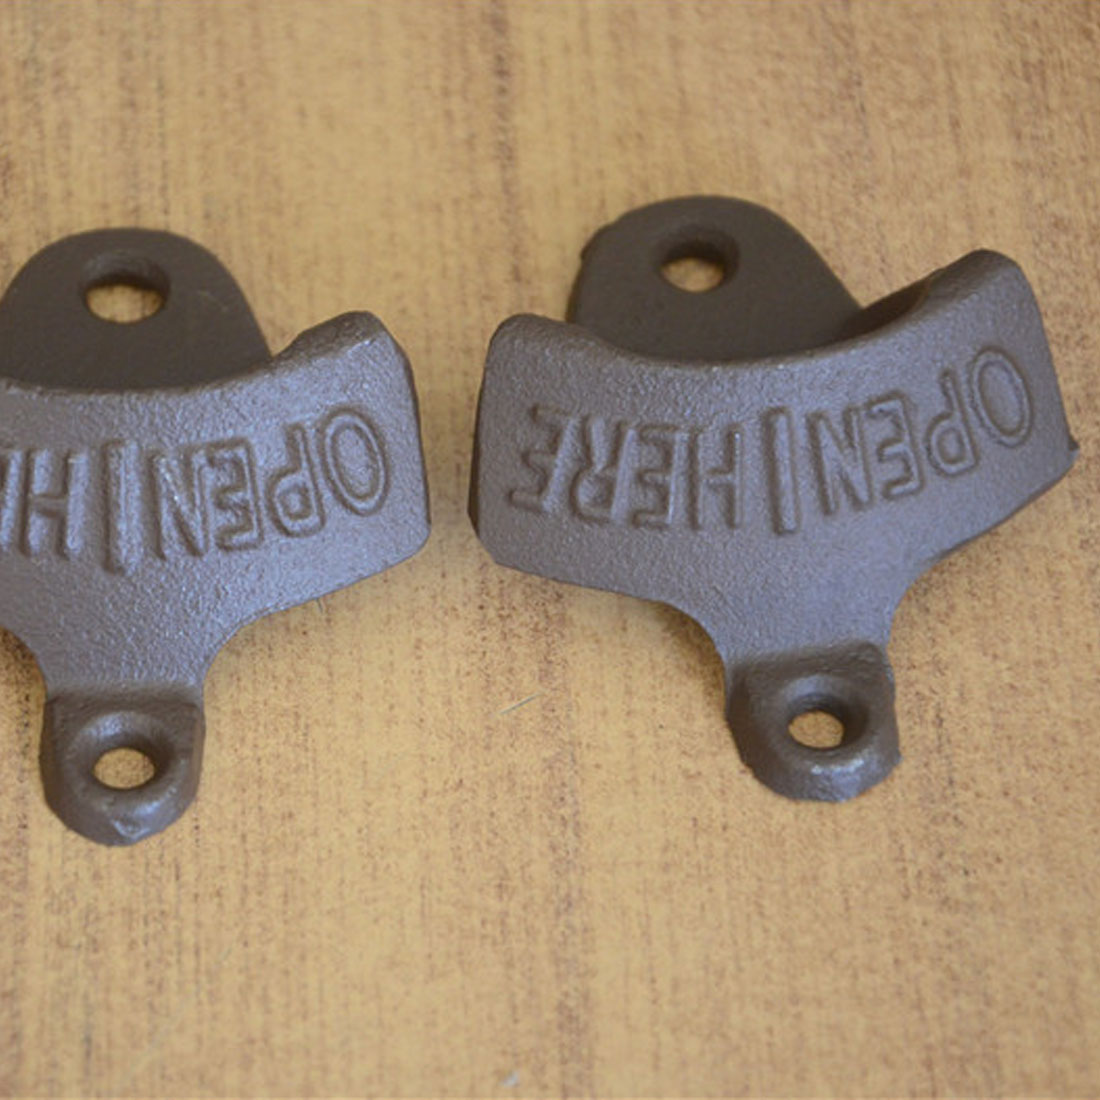 Top Sale 1 pc Vintage Rustic Iron OPENER Beer Bottle Opener Wall ...